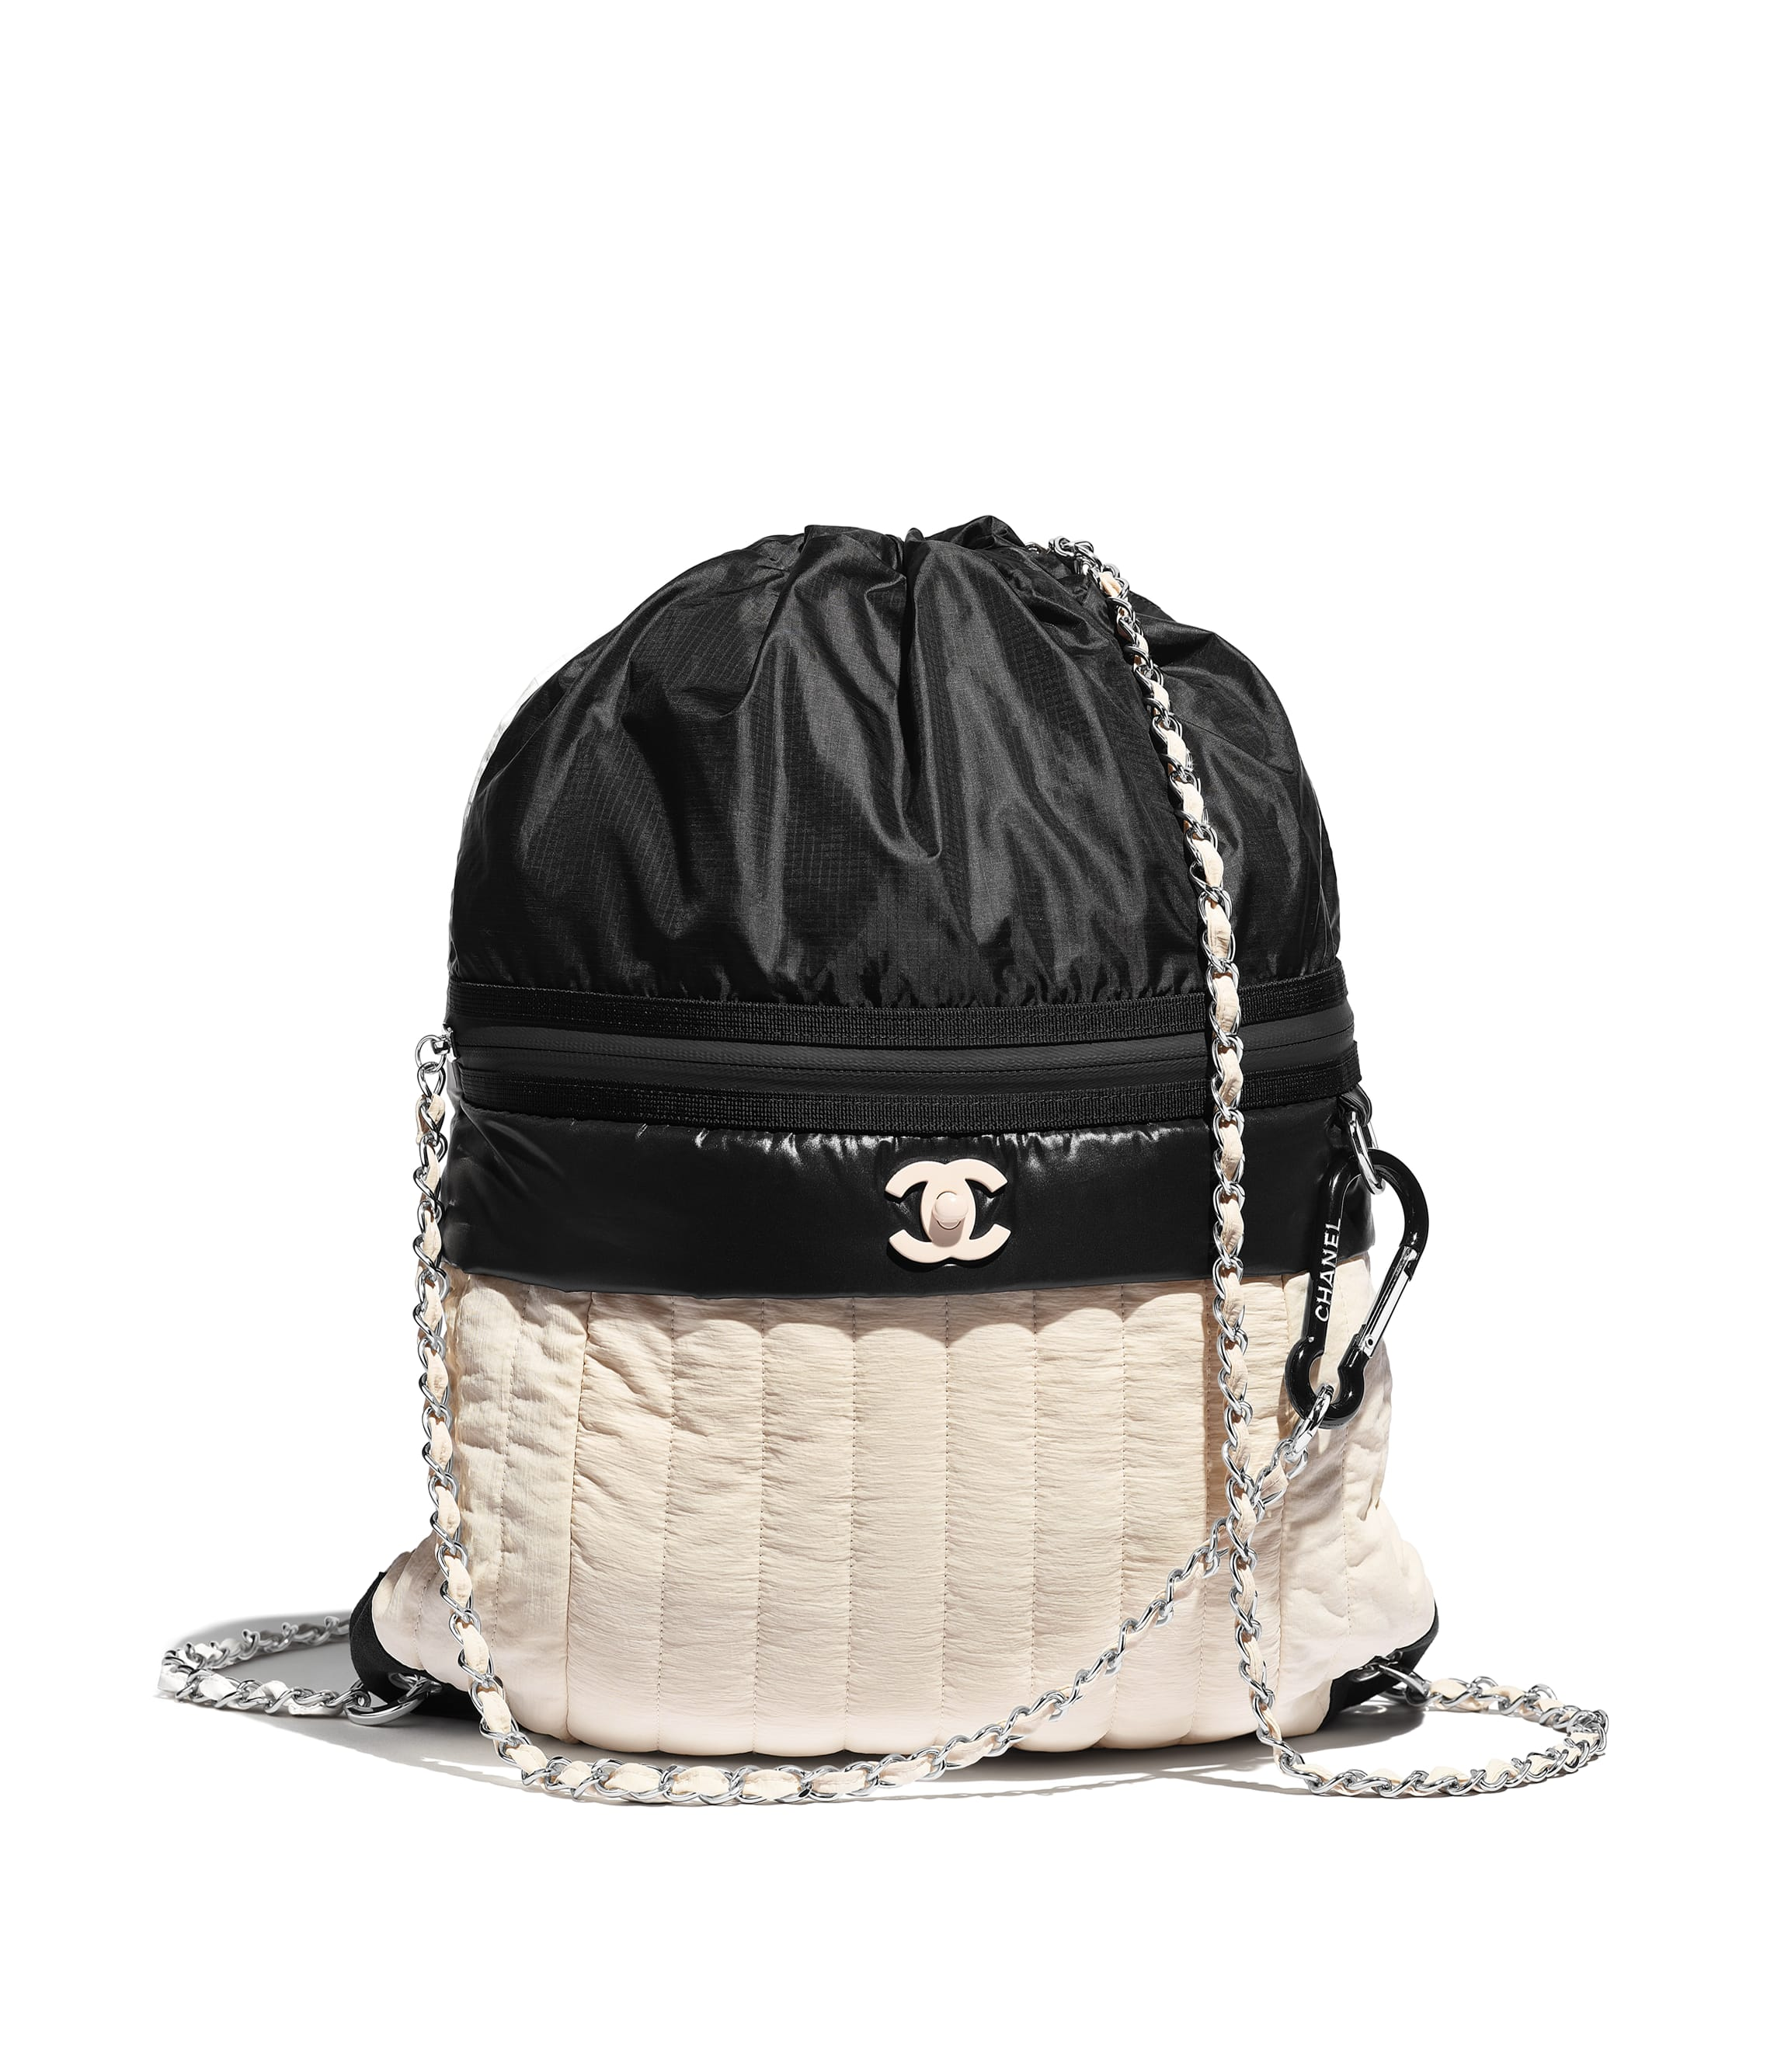 Backpacks - Handbags - CHANEL d4c1197c0f79